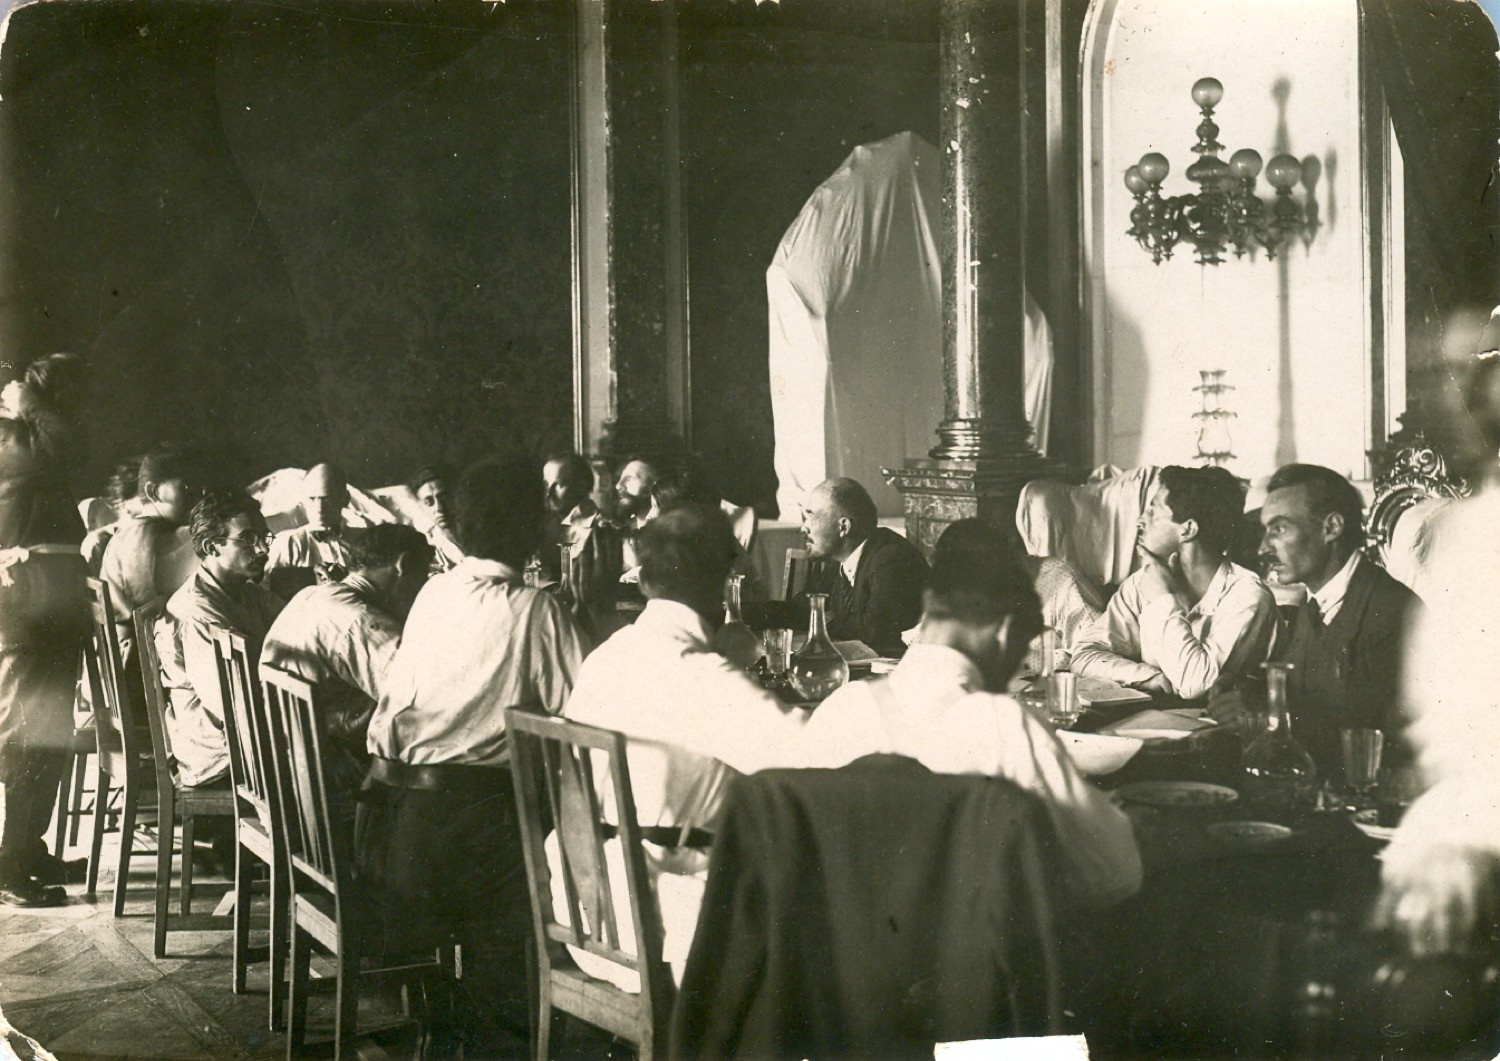 V. I. Lenin in the Kremlin at the session of one of the commissions of the Second Congress of Comintern.